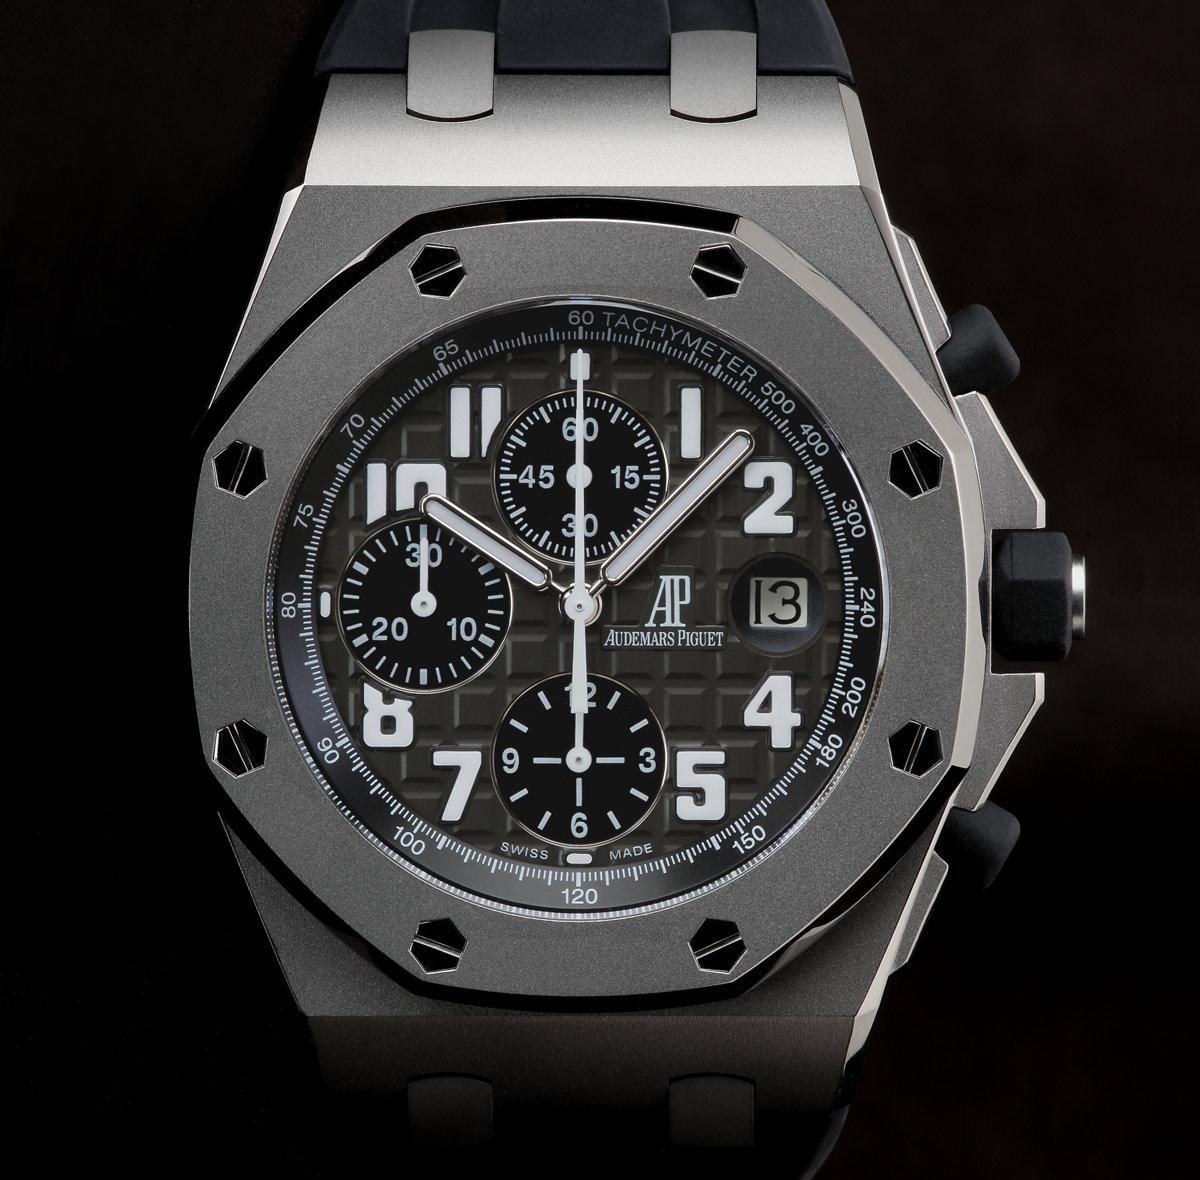 Royal Oak Offshore replica